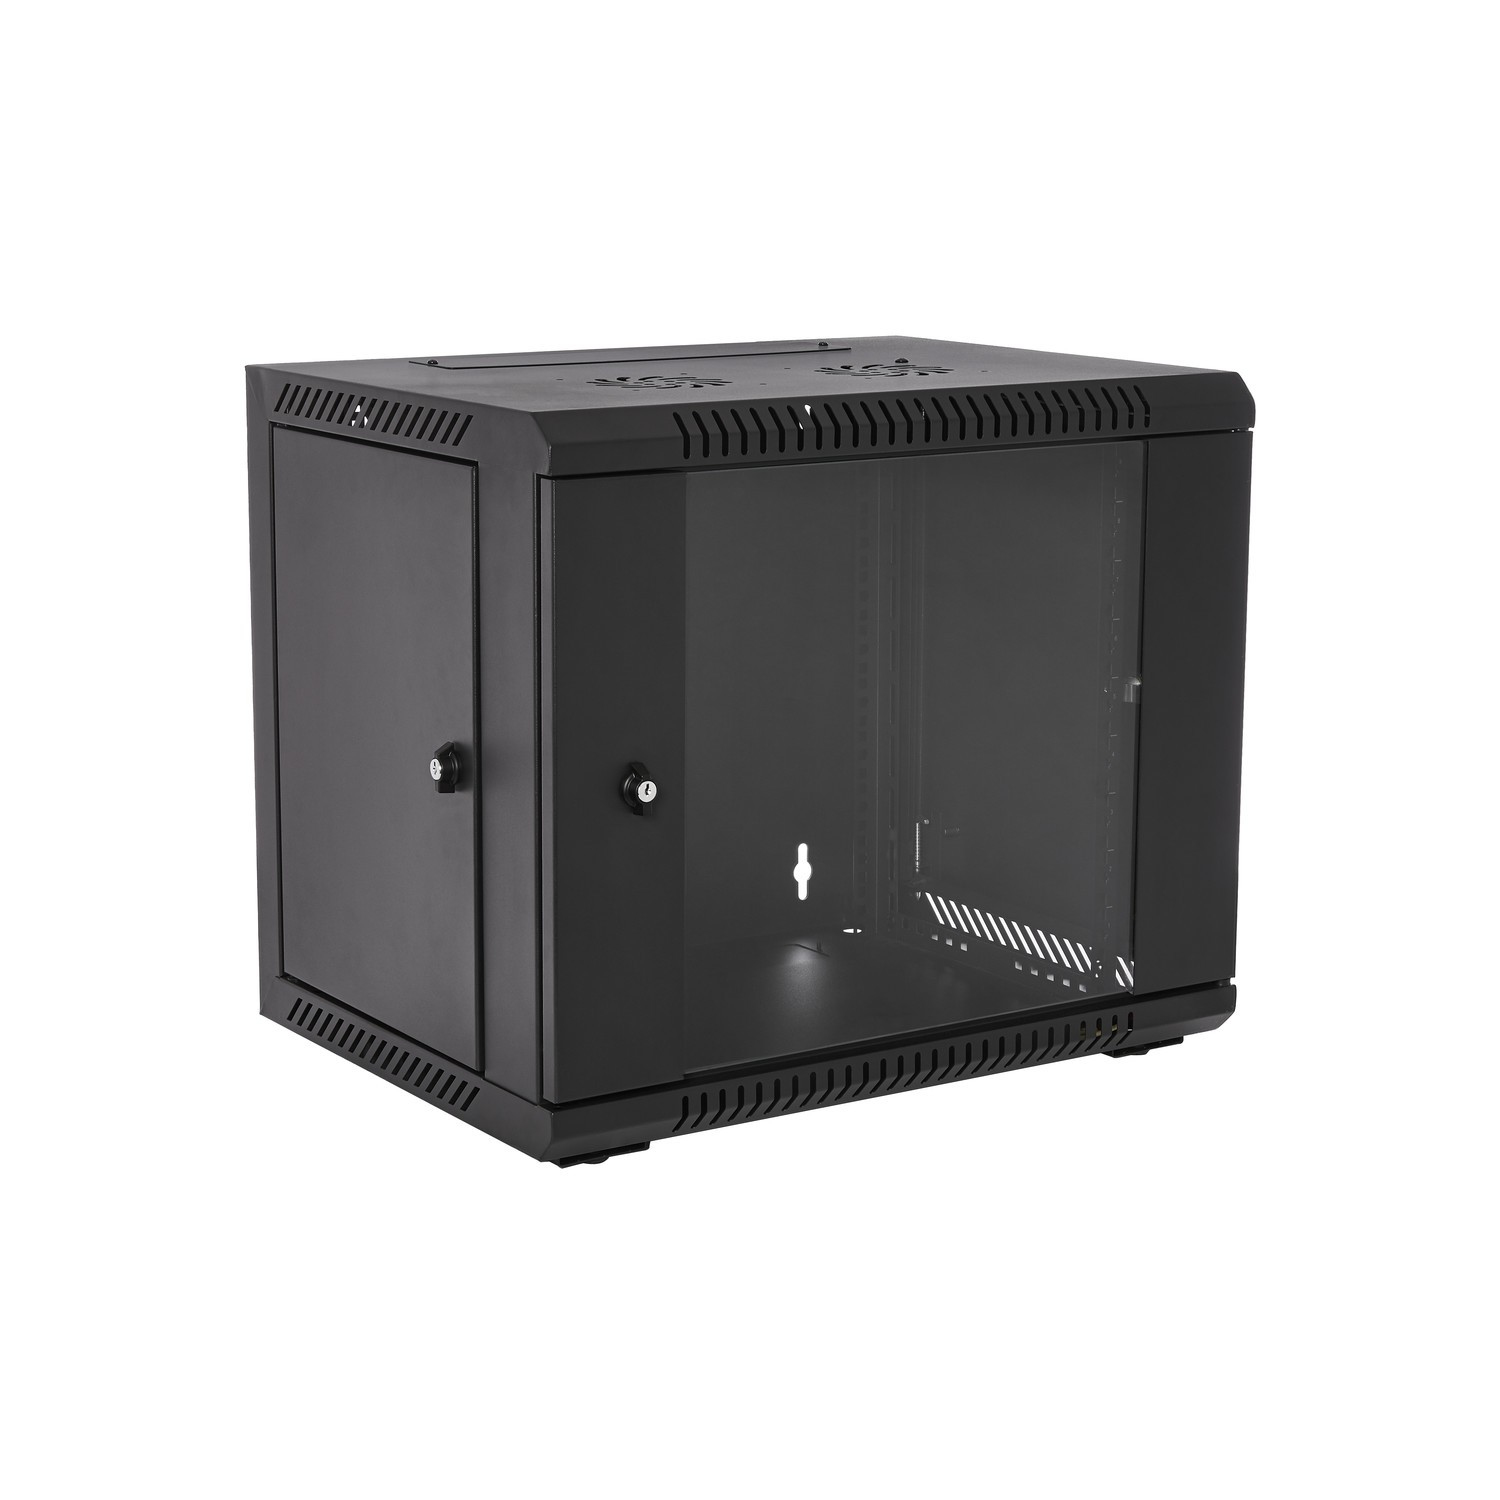 V7 - Racks                       9u Rack Wall Mount Enclosure        Locking Glass Door 450mm            Rmwc9ug450-1e